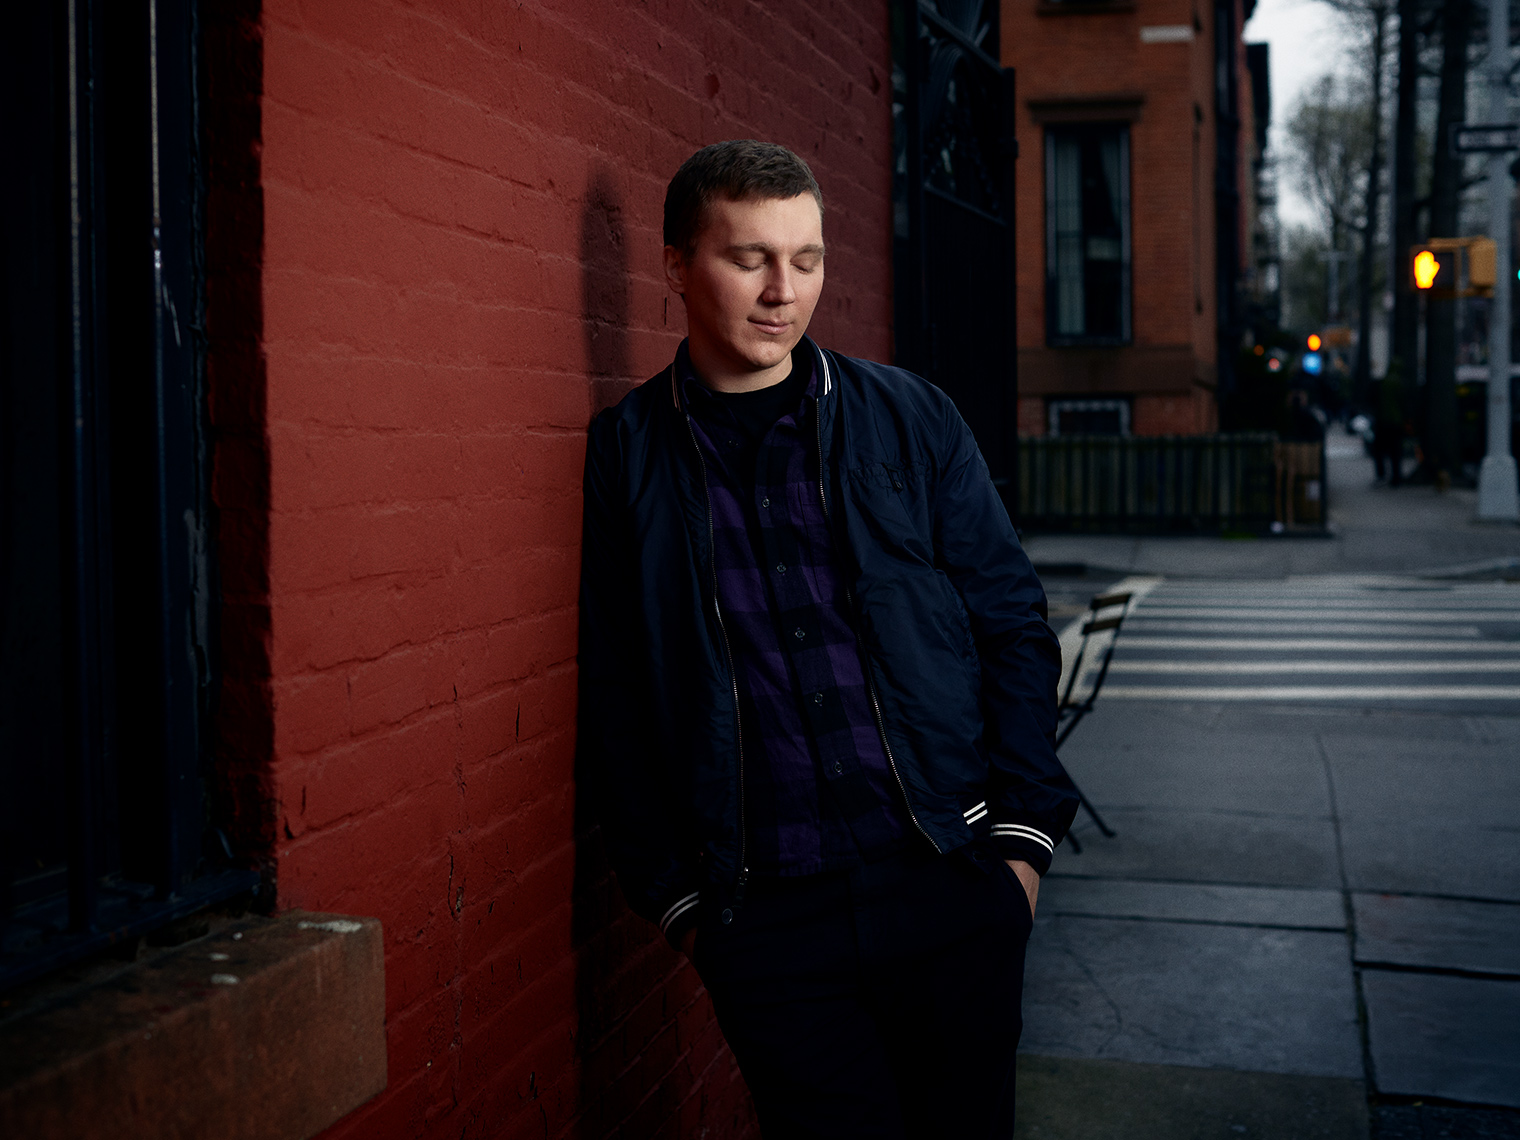 Rick_Wenner_Paul_Dano_016_Retouched